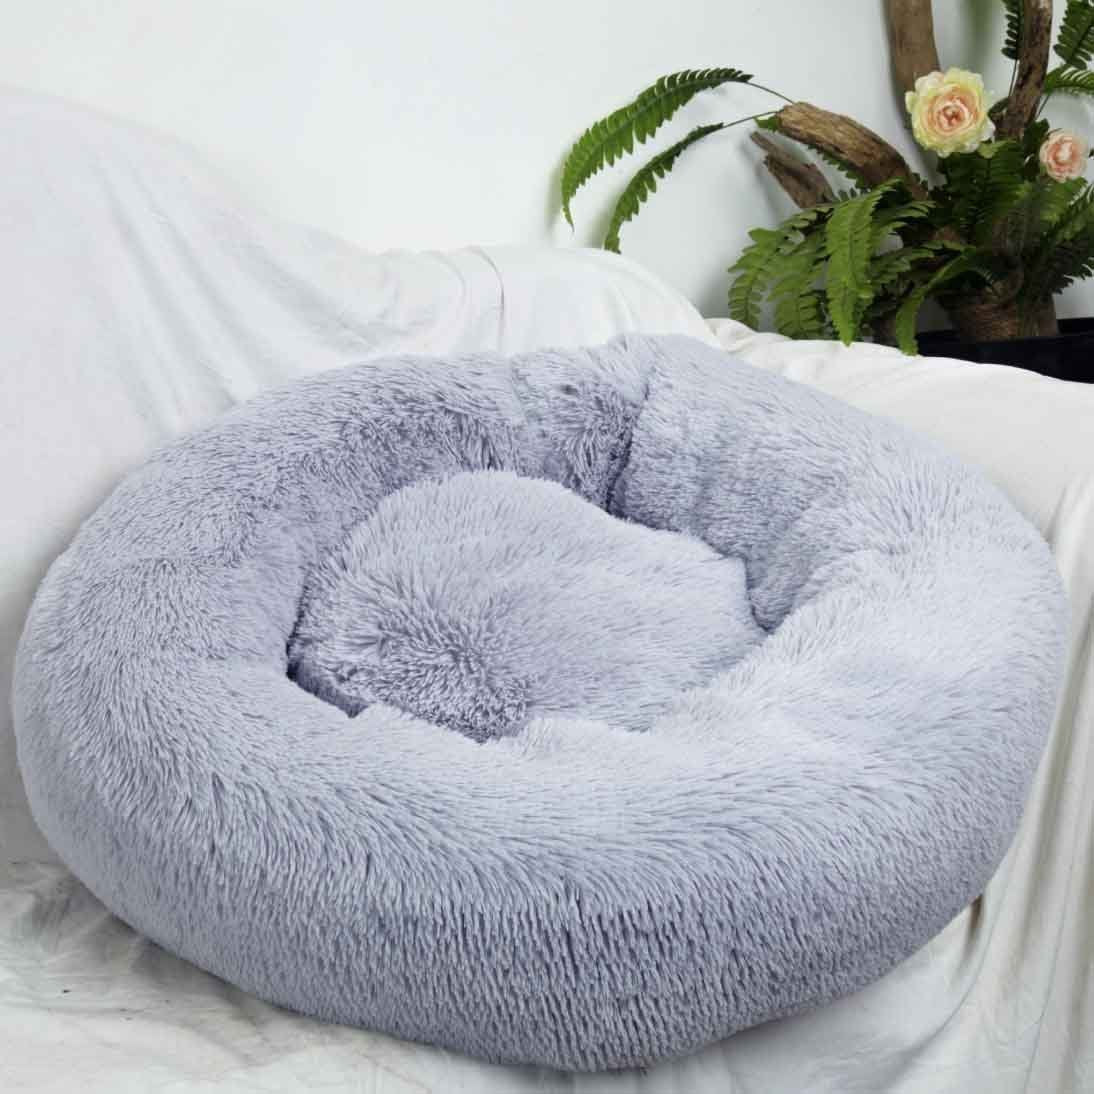 【 FOR YOUR CUTE BABY】Pets Dount Calming Bed